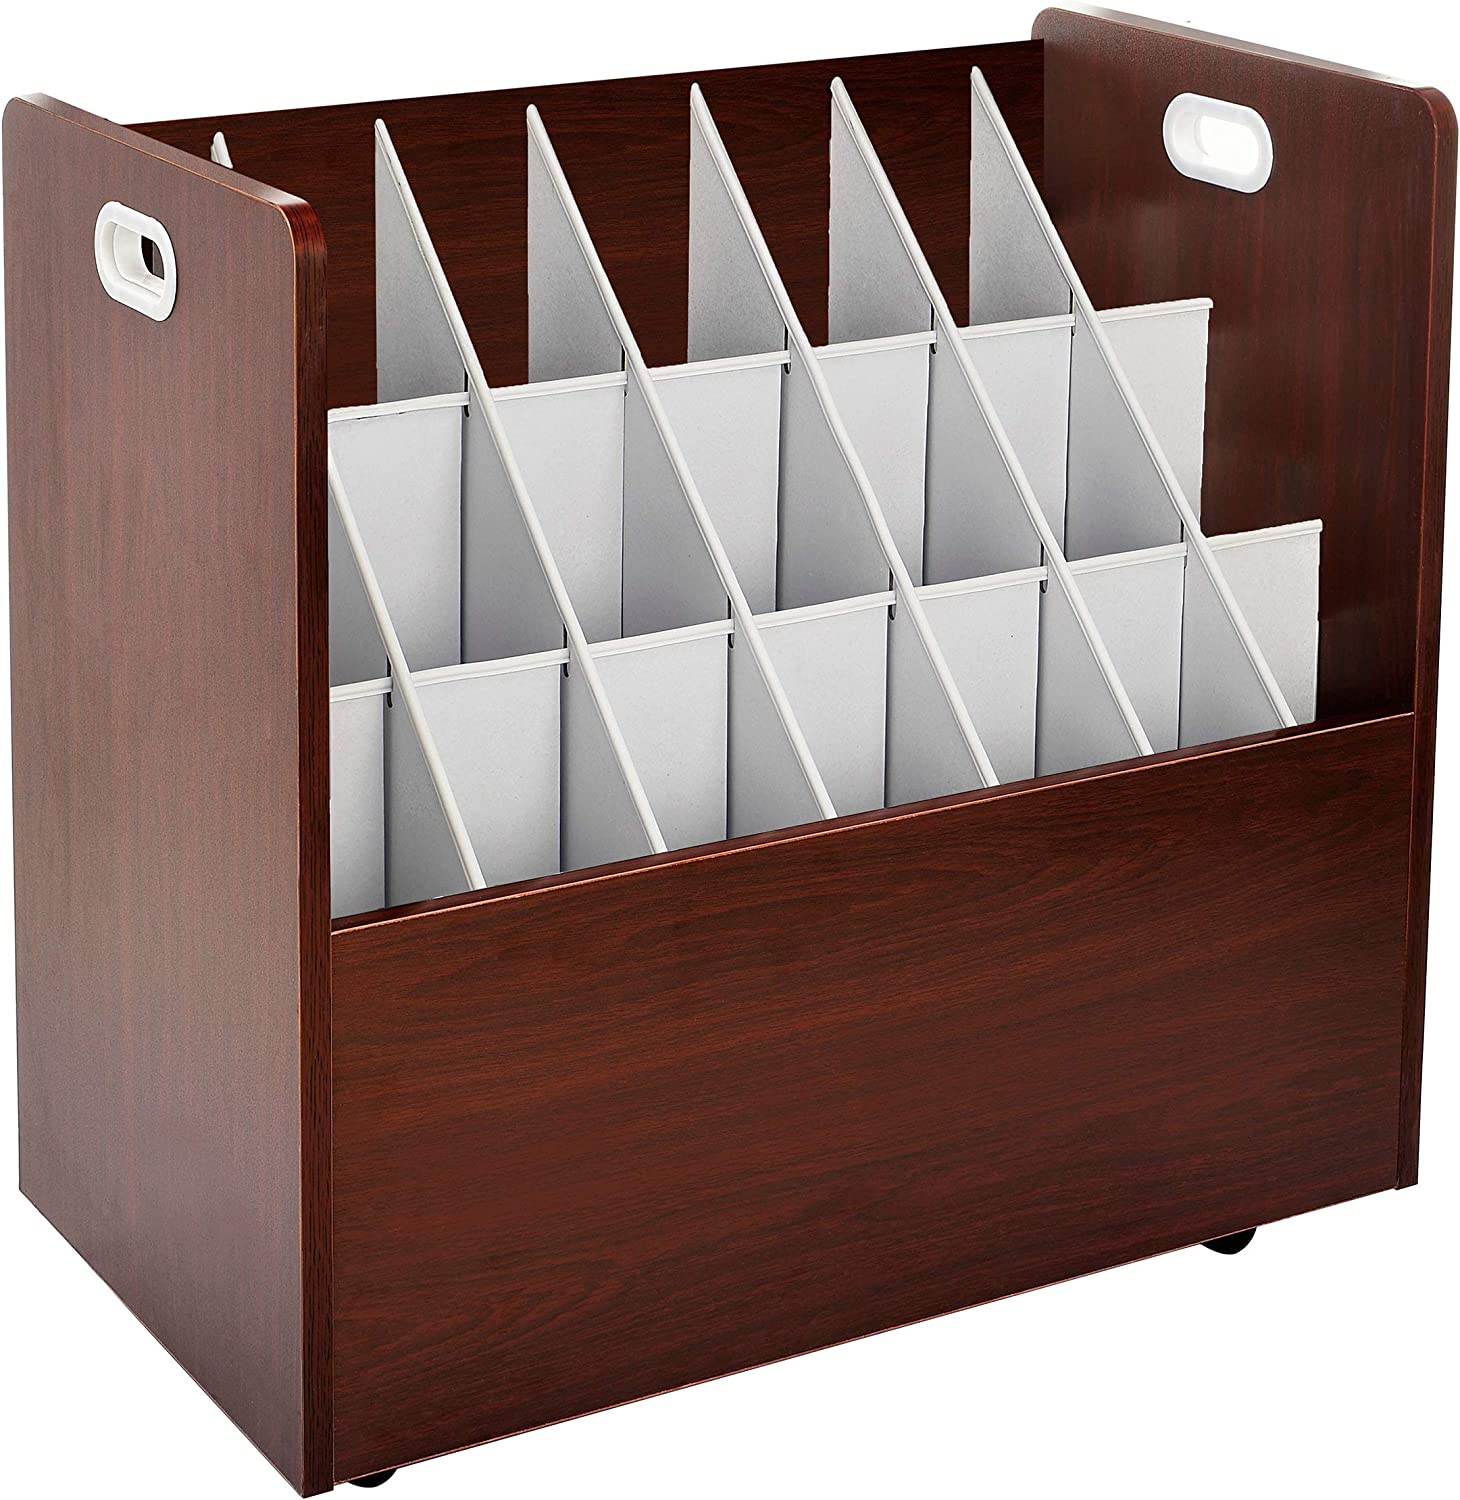 AdirOffice Mobile Wood Blueprint Roll File - Sturdy, Heavy Duty Large Document Organizer - Convenient Storage for Home Office or School Use (21 Slots, Mahogany)